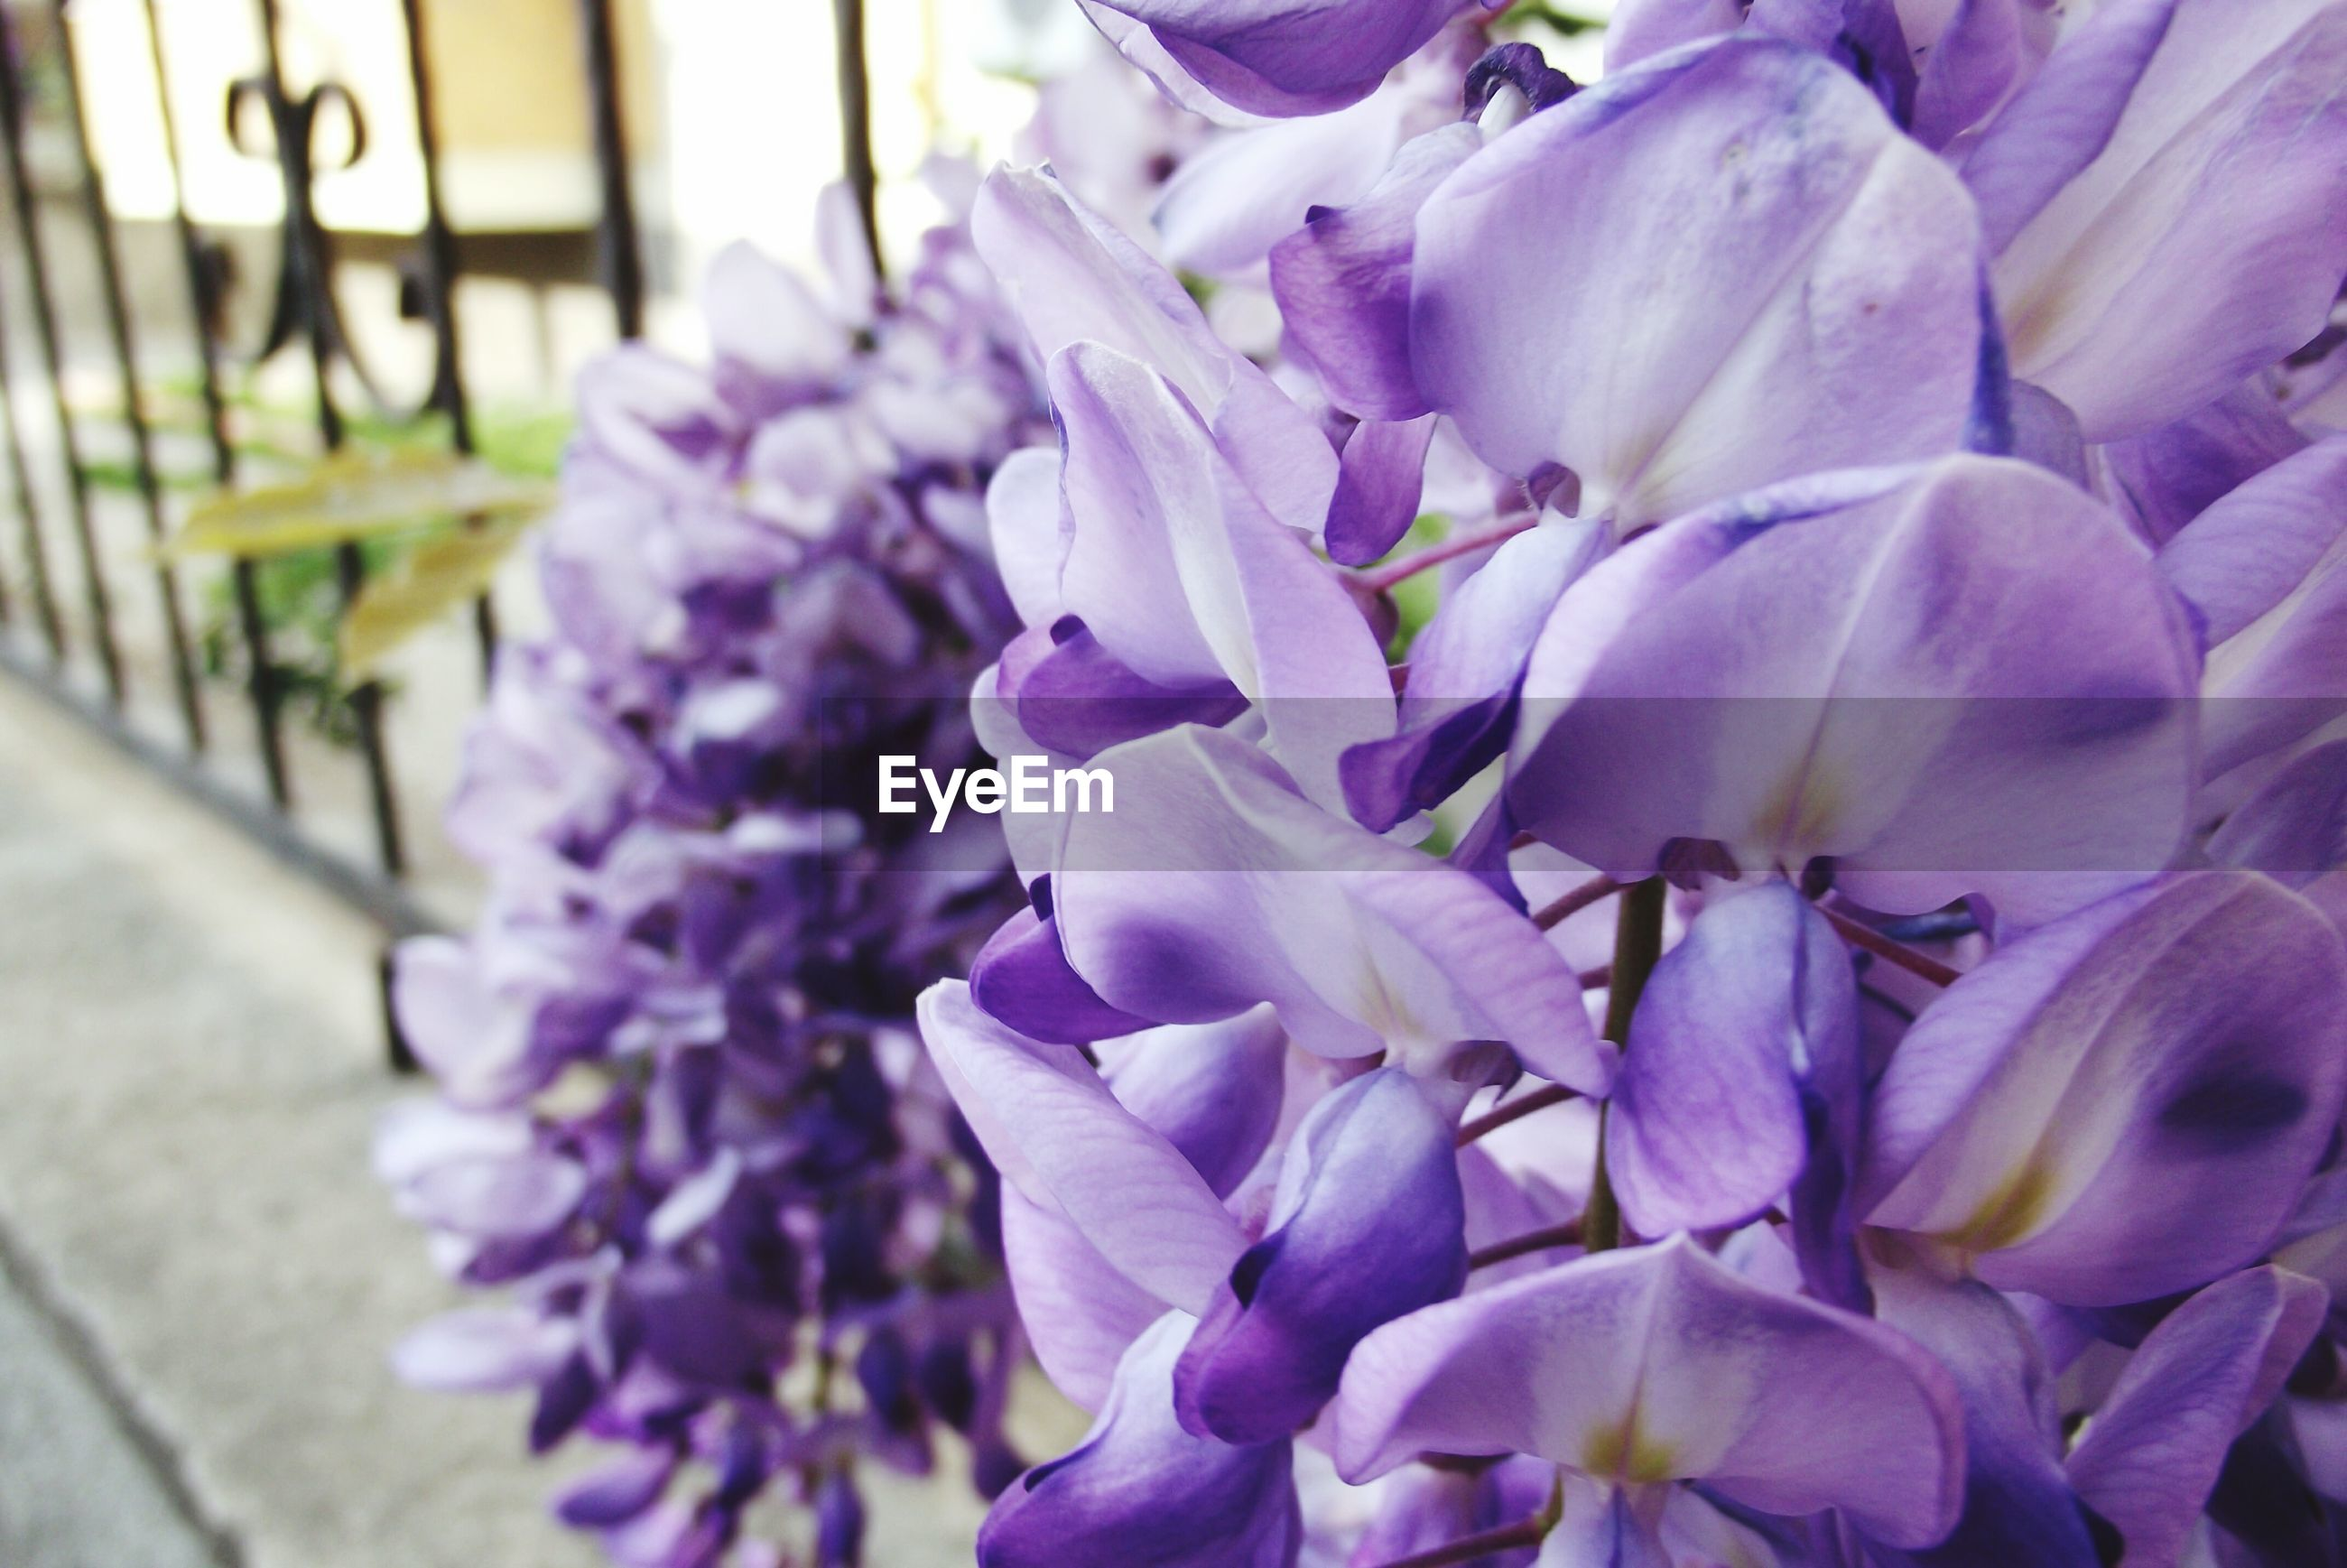 flower, purple, nature, freshness, beauty in nature, fragility, growth, close-up, outdoors, day, no people, flower head